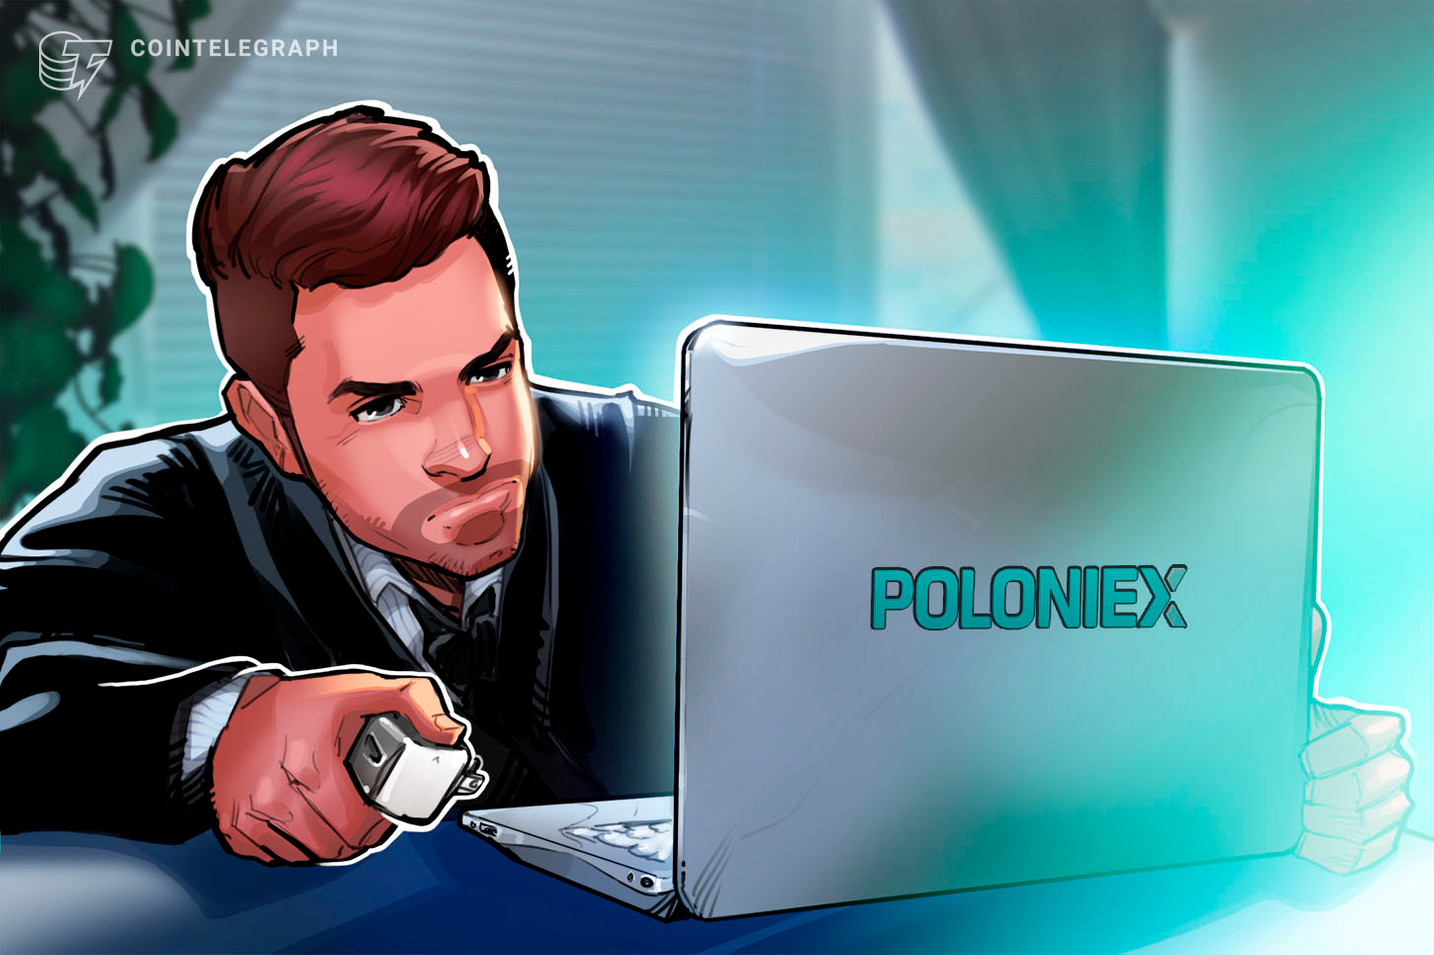 Poloniex Crypto Exchange Users Can Now Use Cards and Bank Accounts